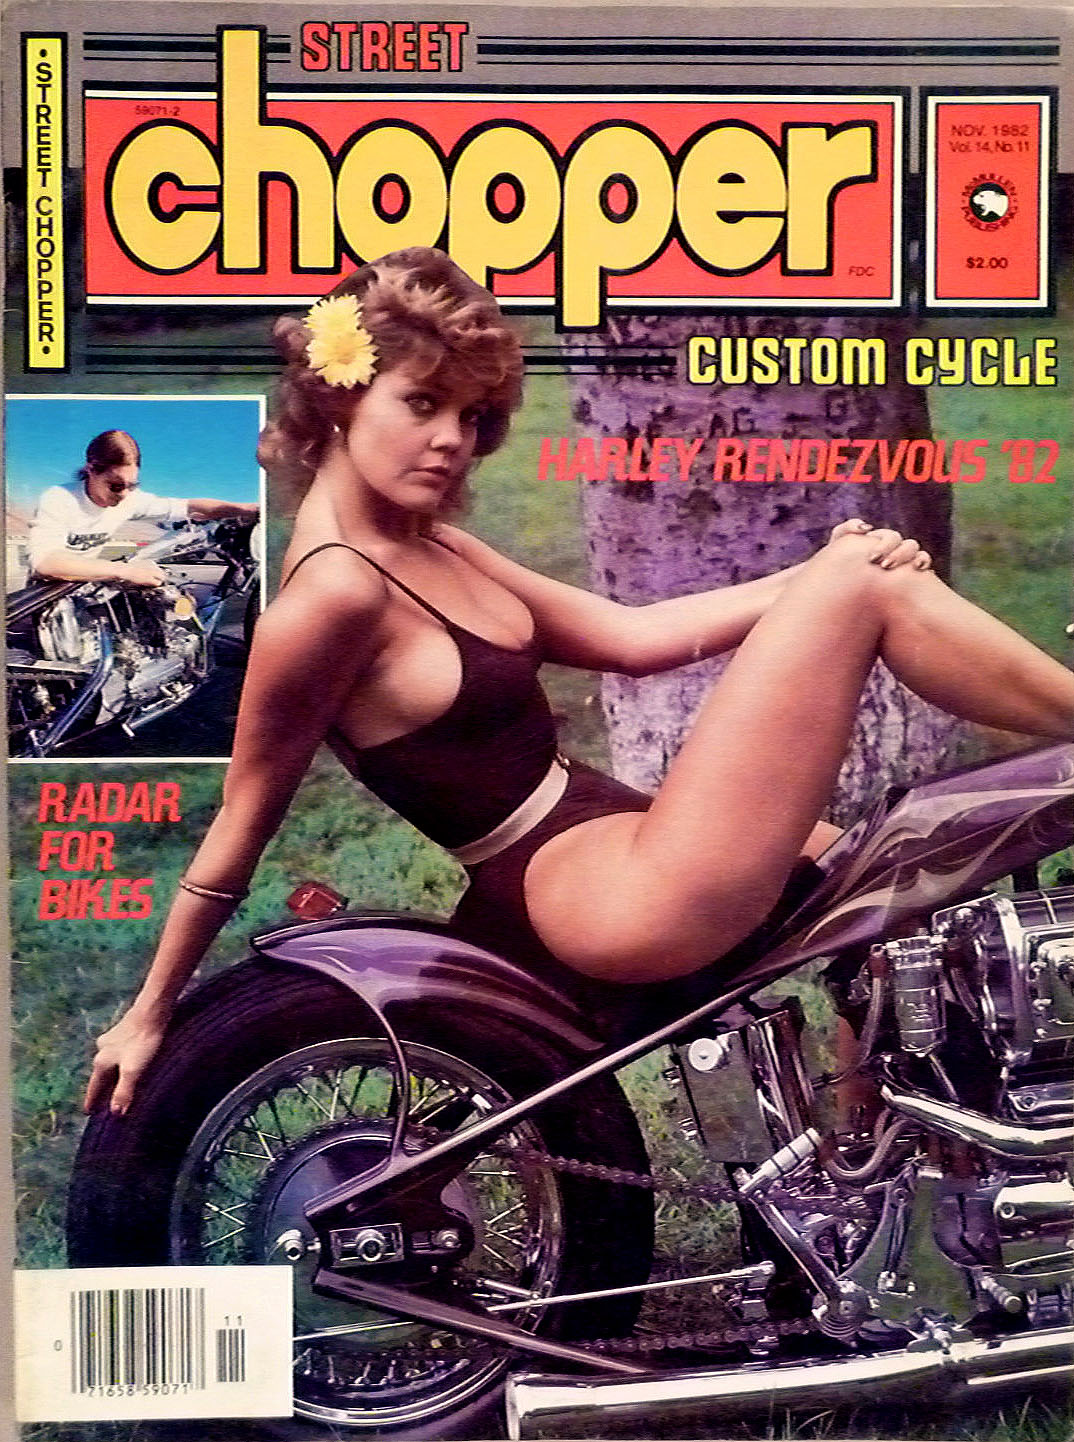 street chopper magazine cover 1982